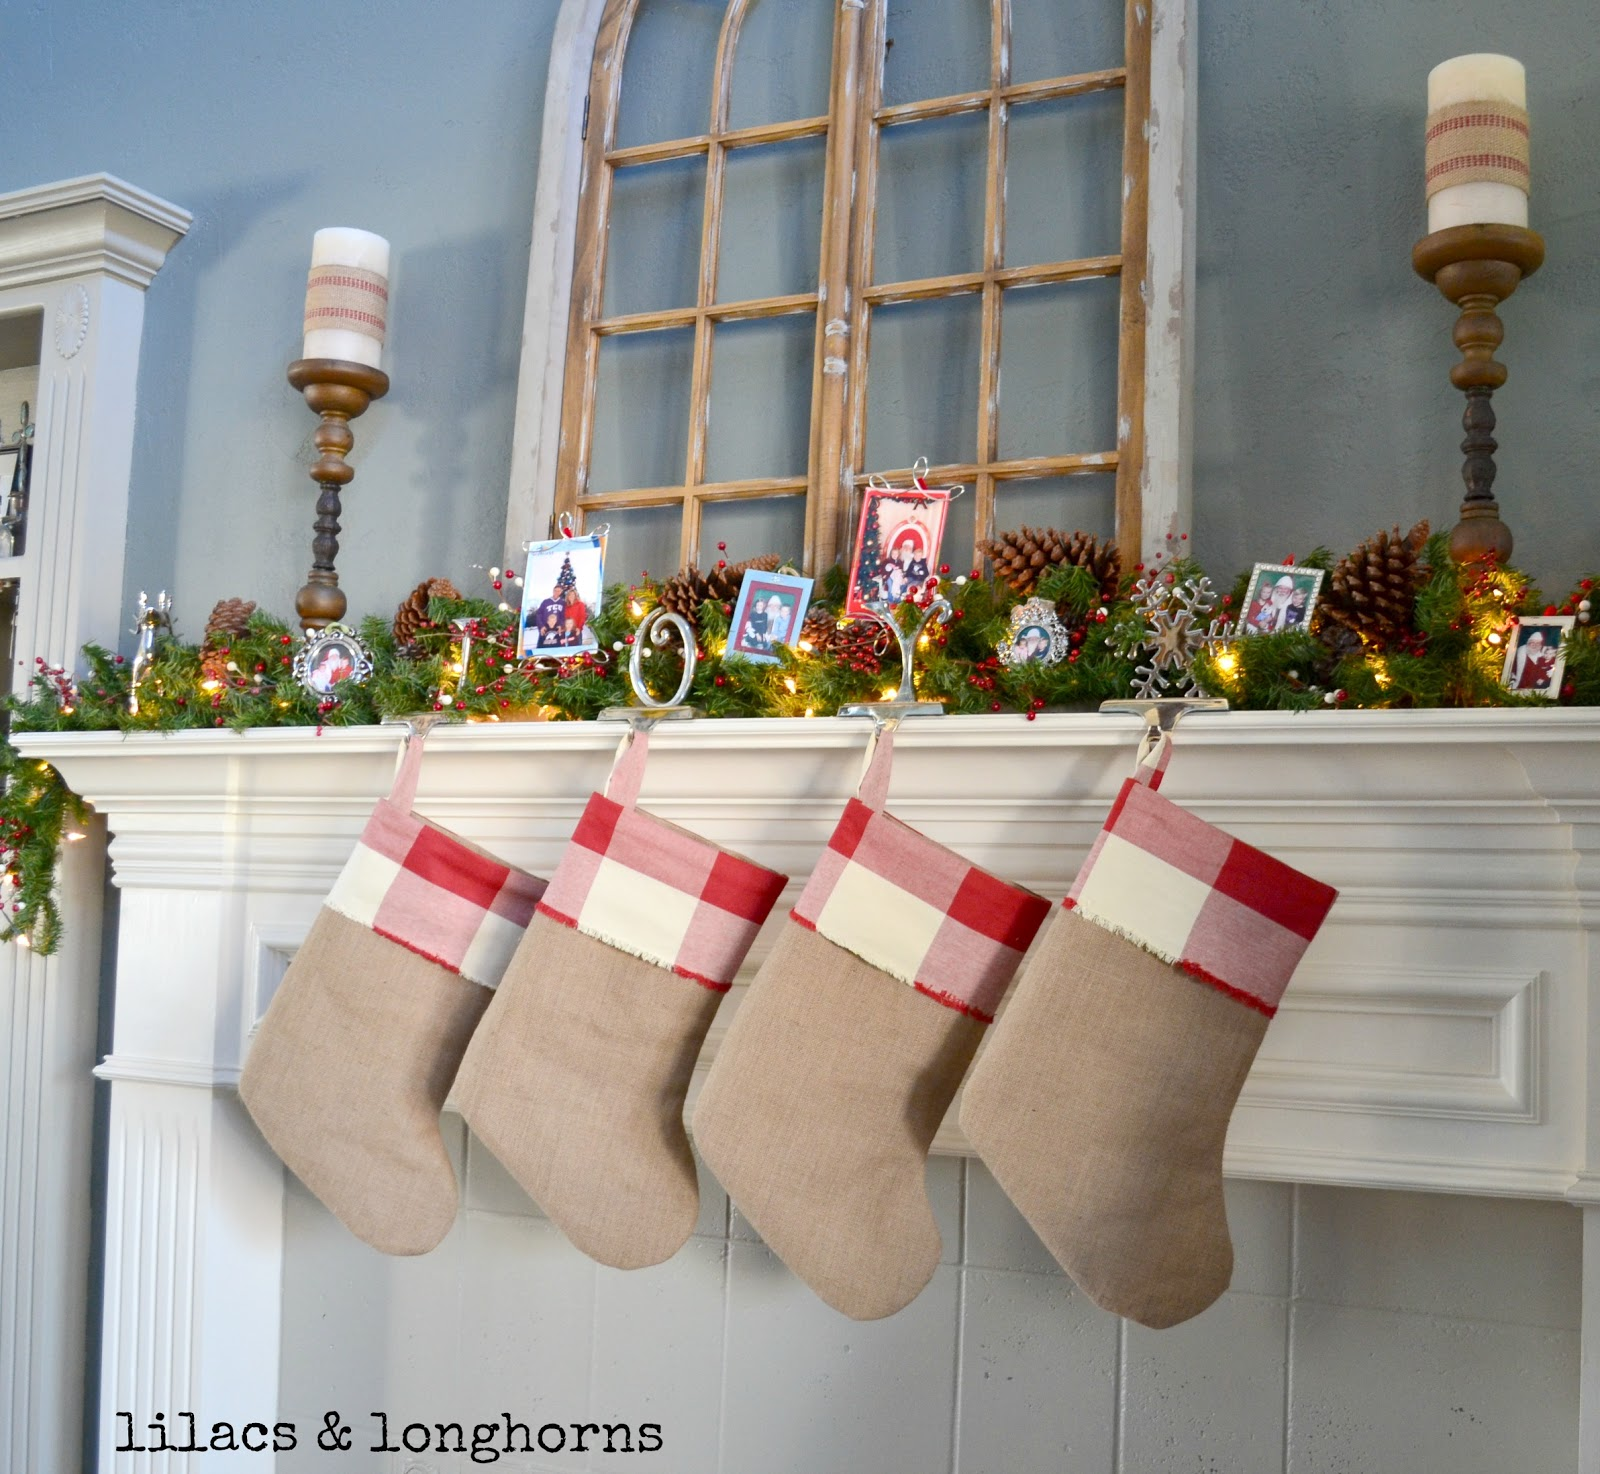 personalized christmas in holiday stockings gh mdysux embroidered barn picturesque barns initialsbear tree snazzy chri pottery stocking